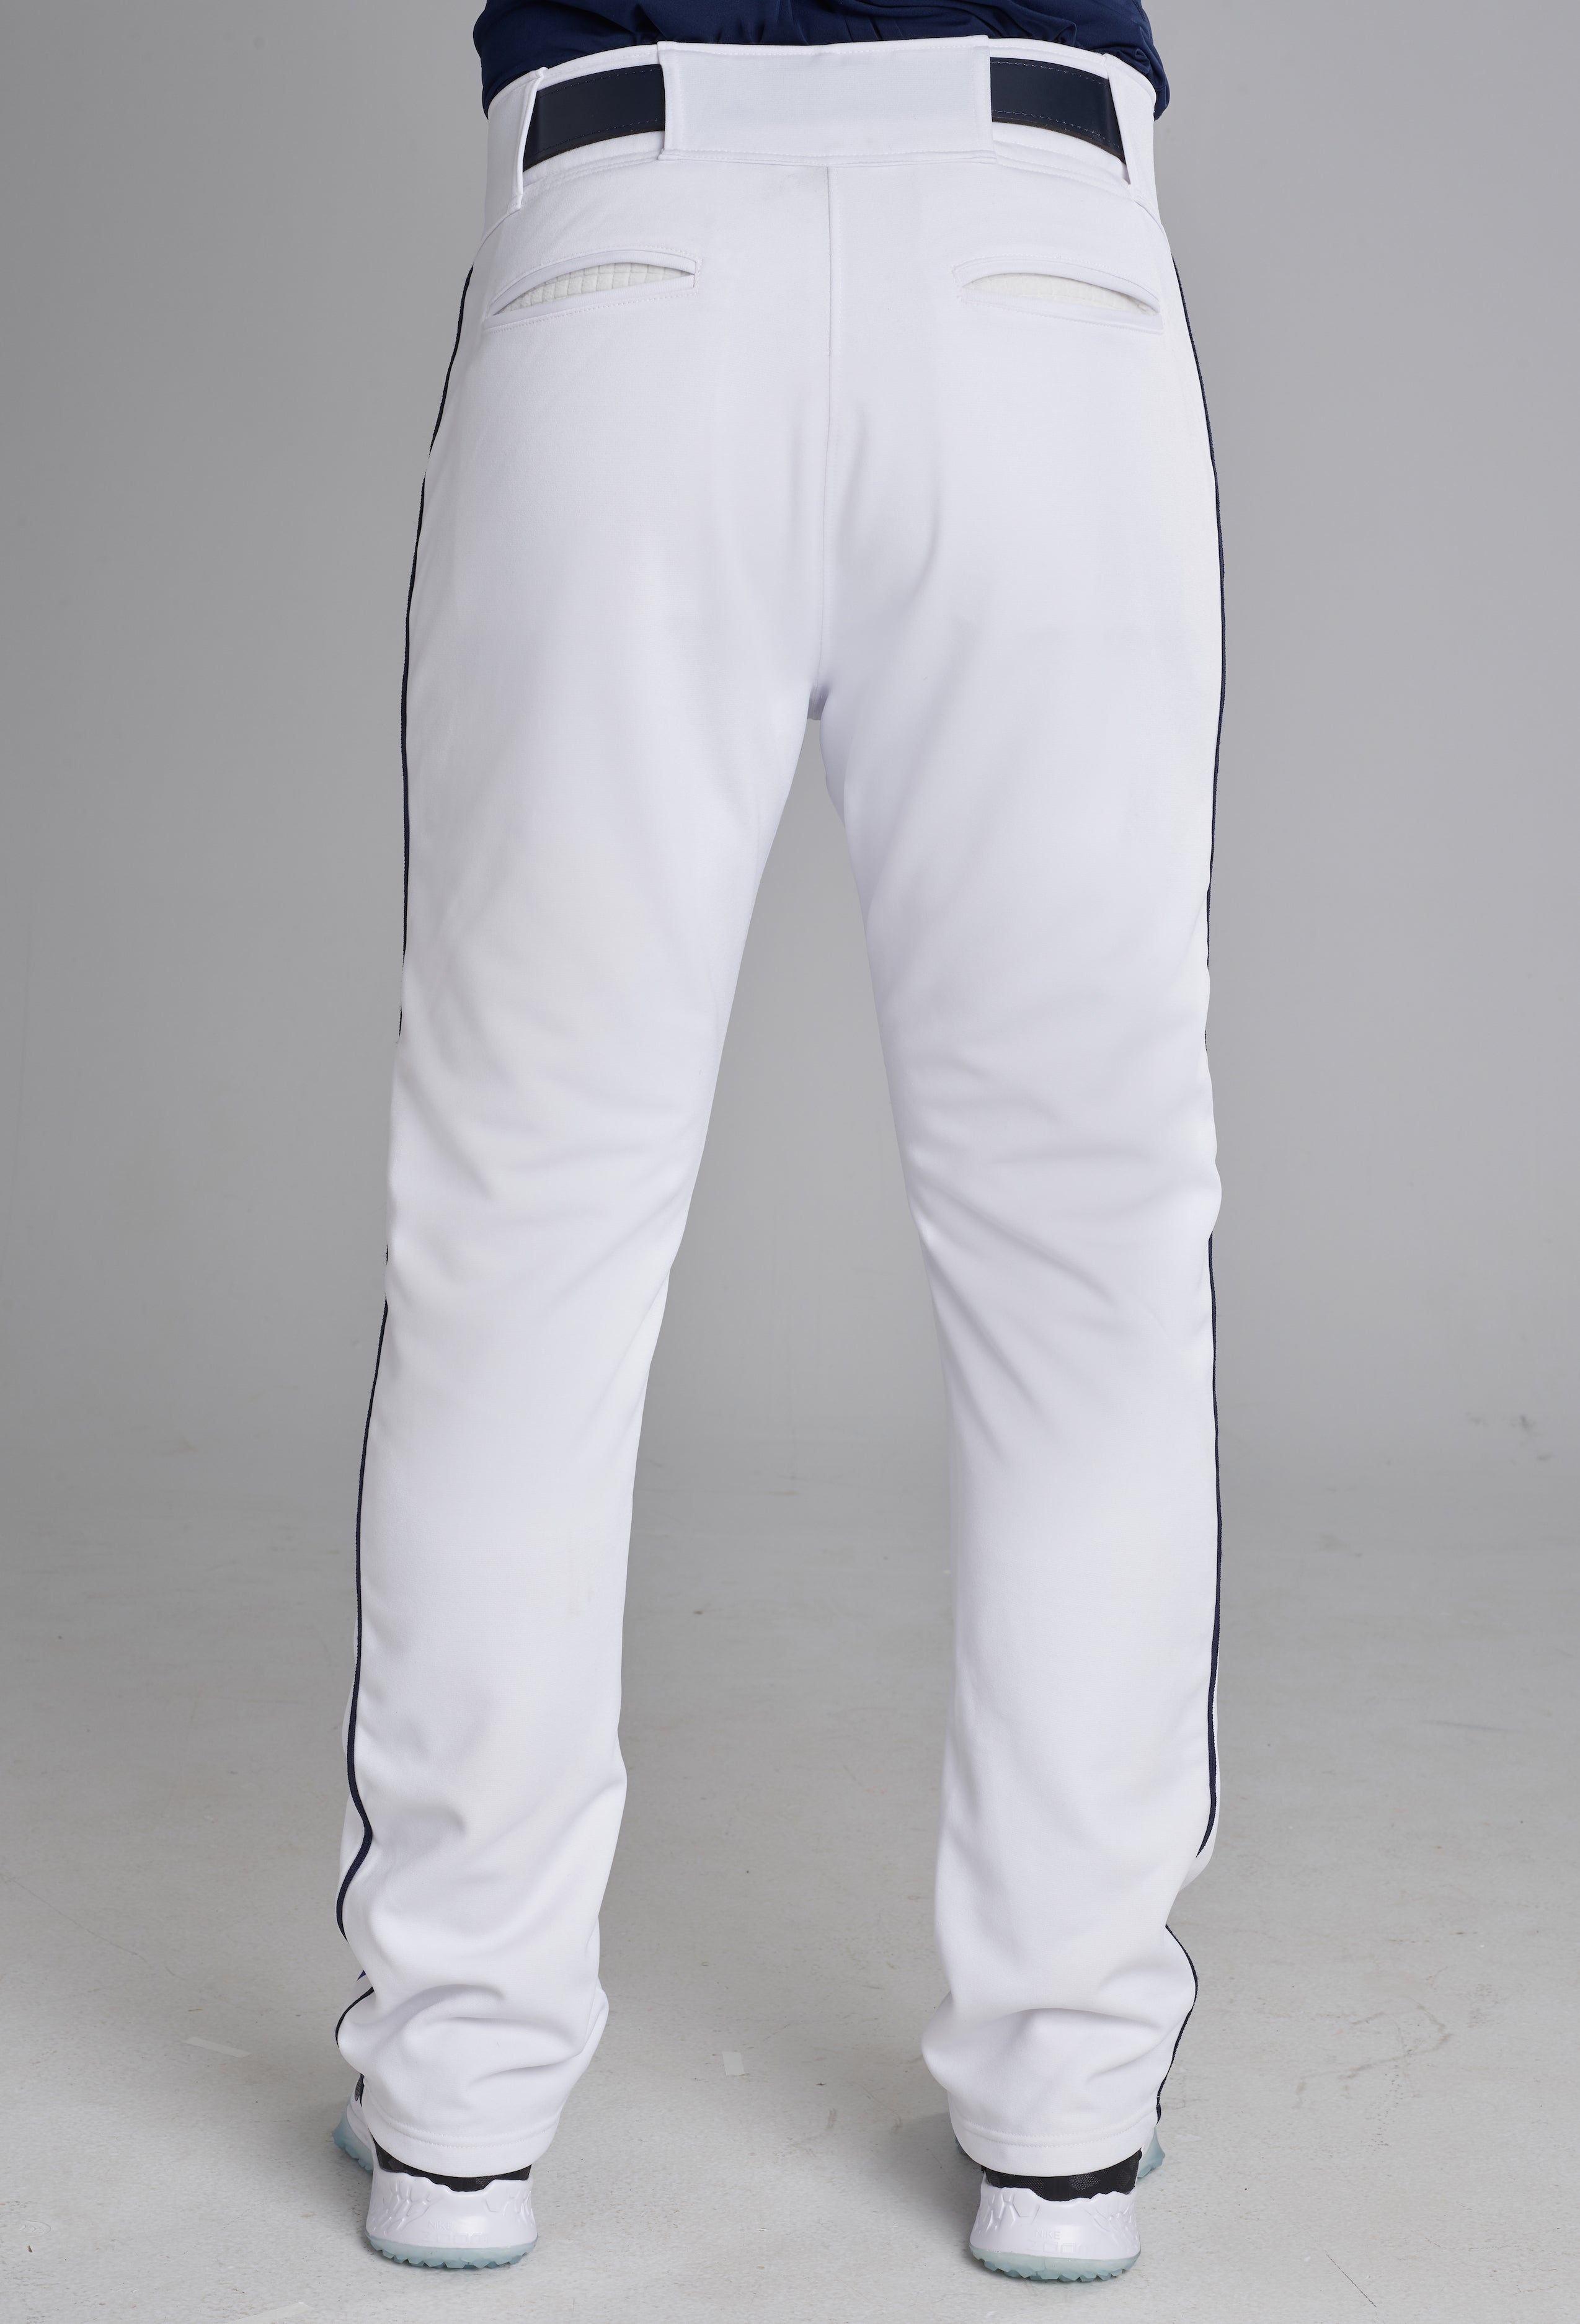 Baseball Pants | Sub60° Series | White